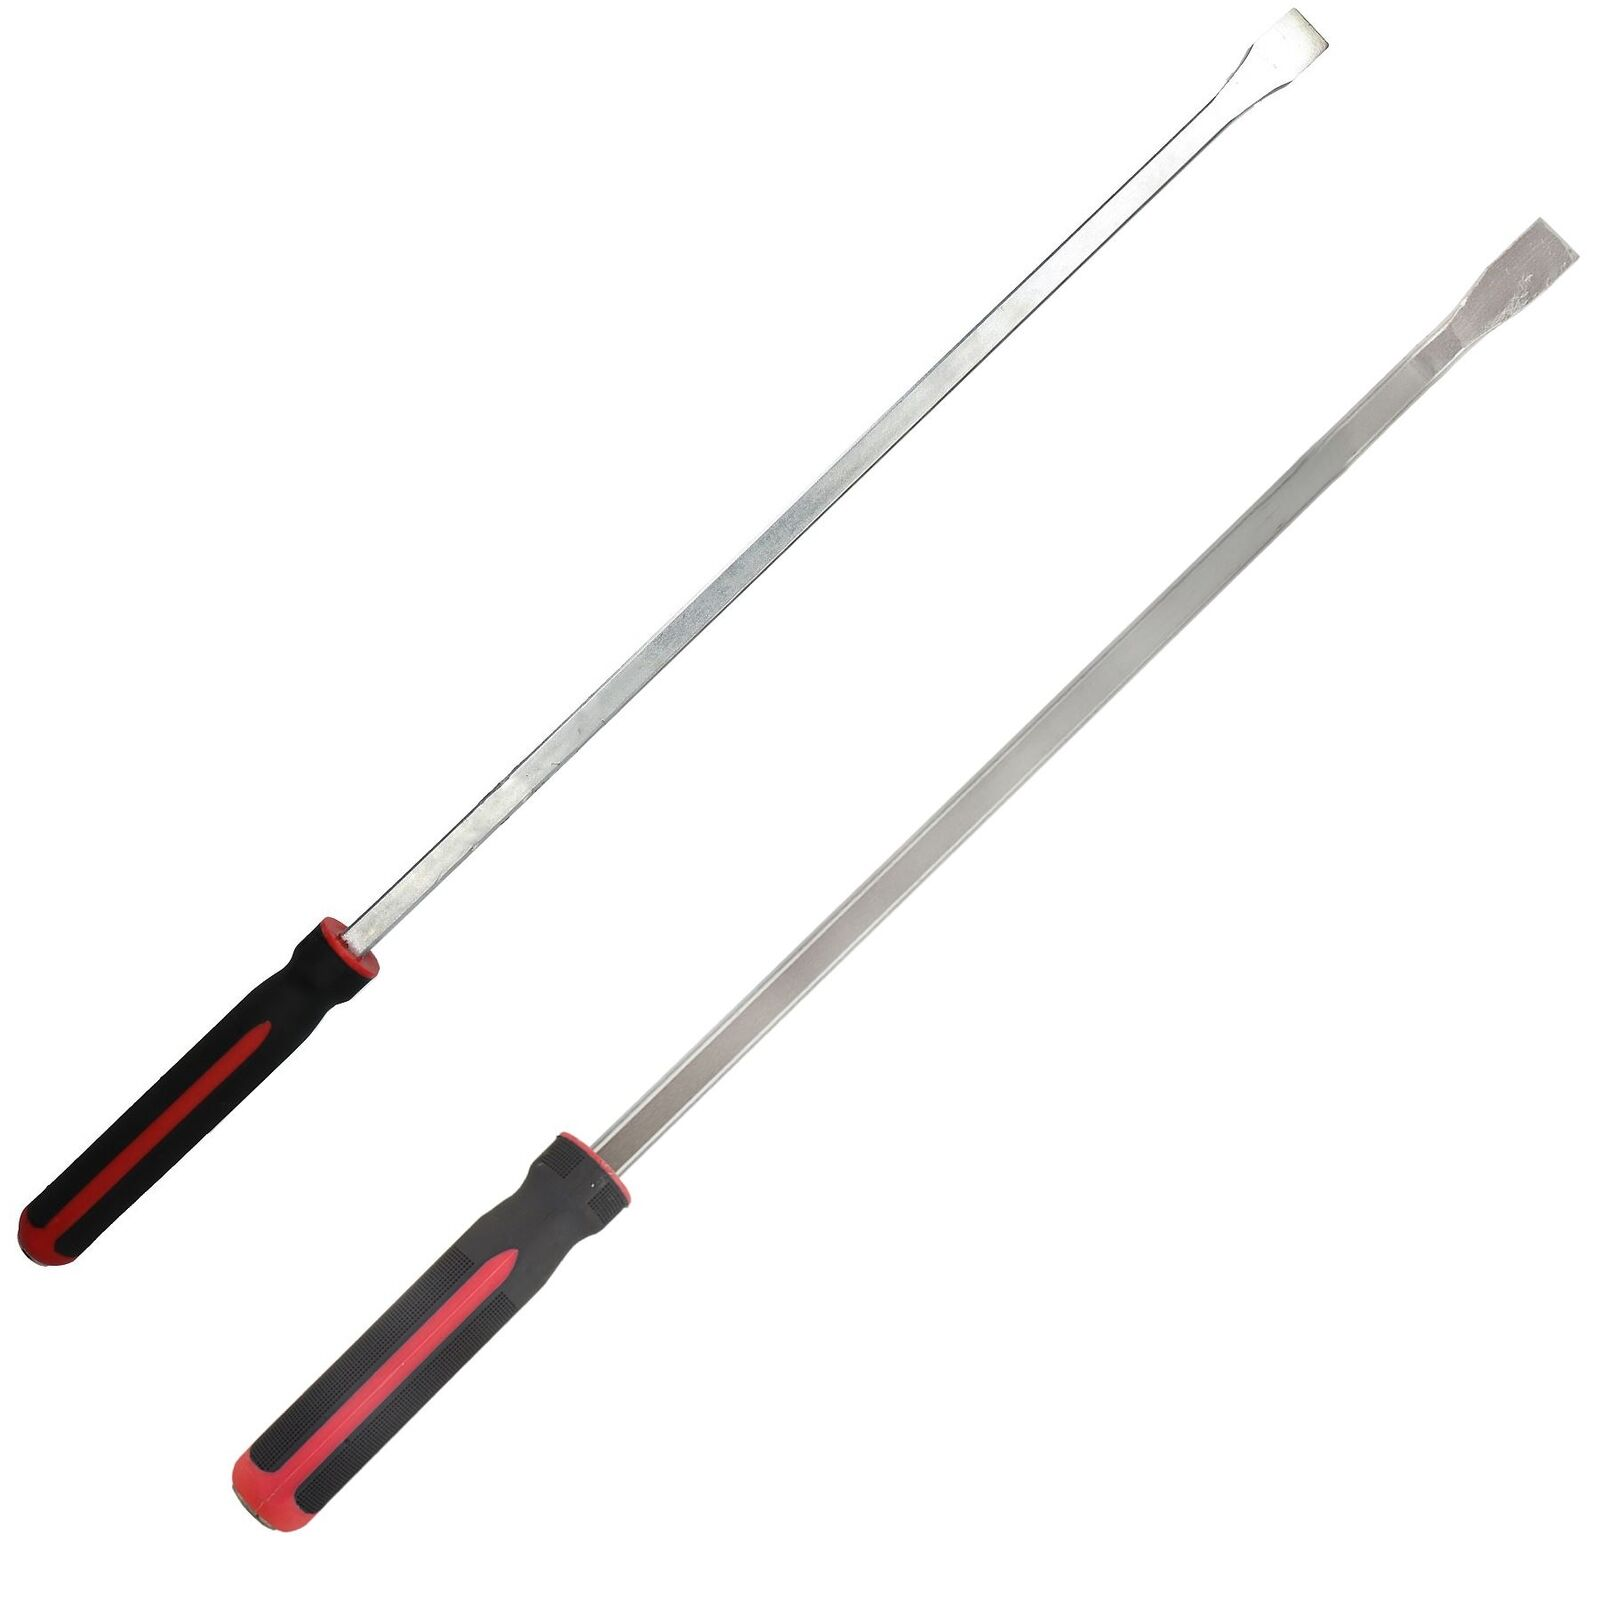 2pc Extra Long 36    3 Feet Straight and Angled Pry Bar Set Crow Bars Lever